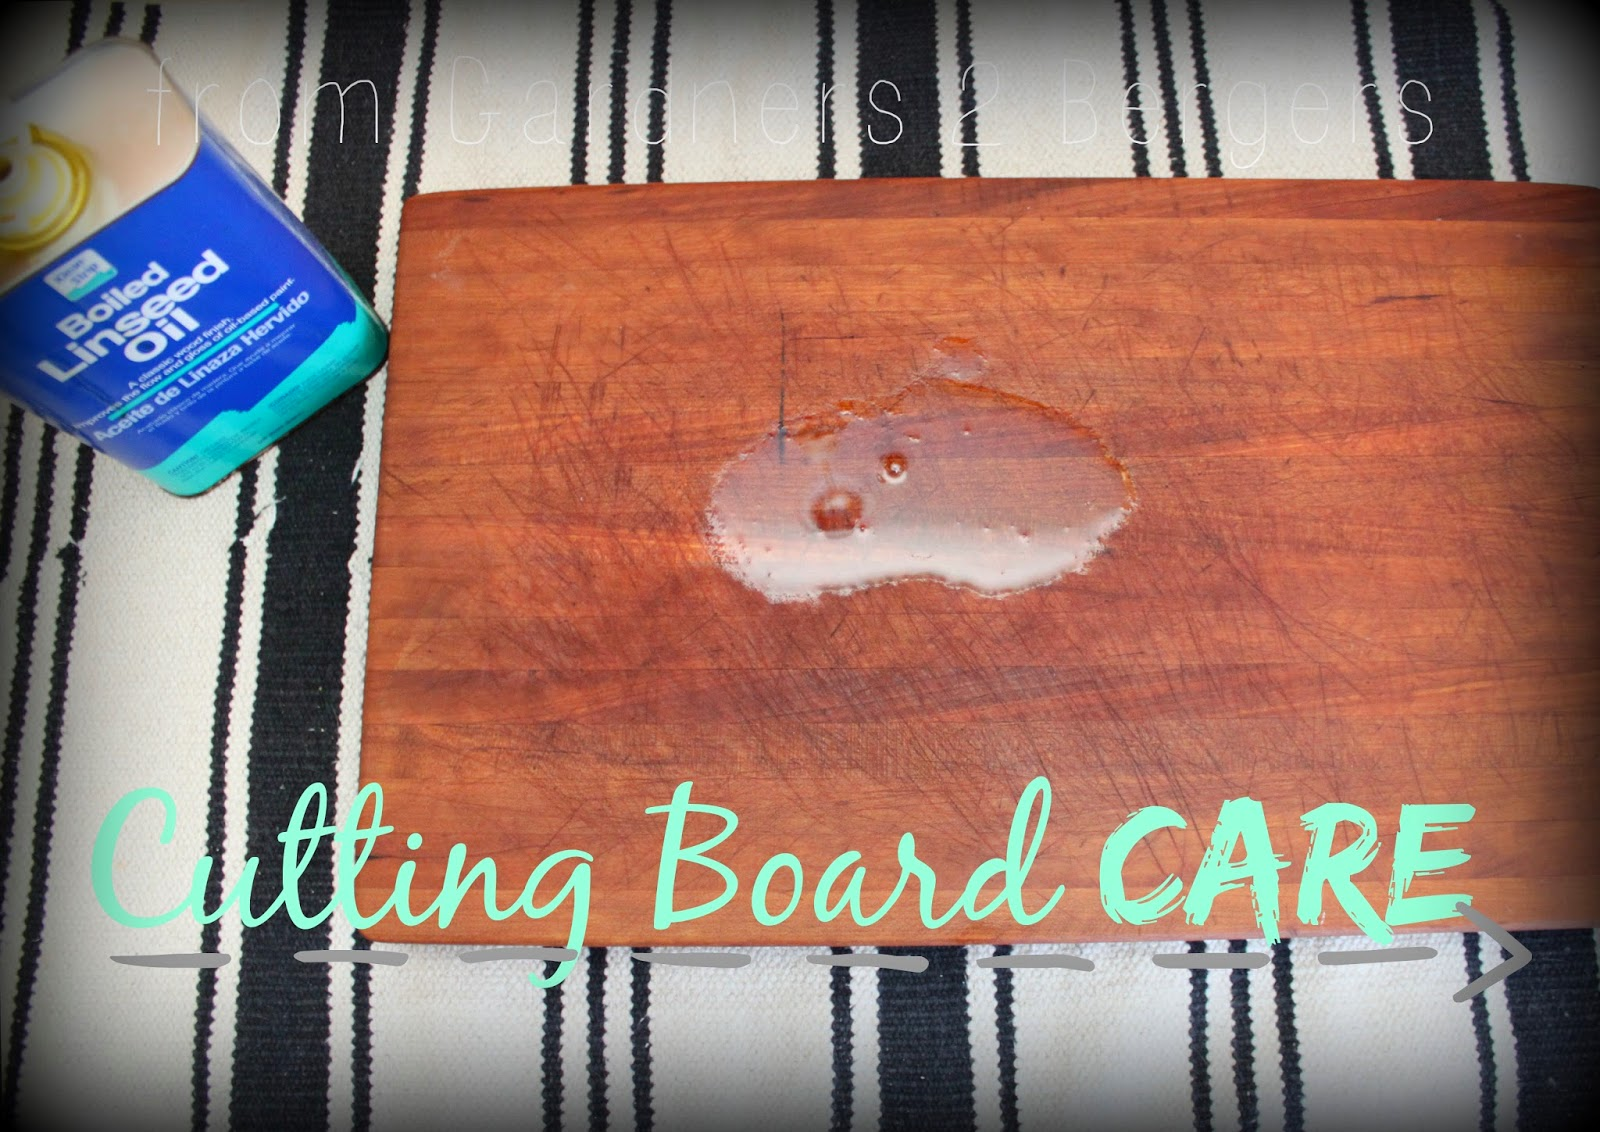 from Gardners 2 Bergers: Cutting Board Care